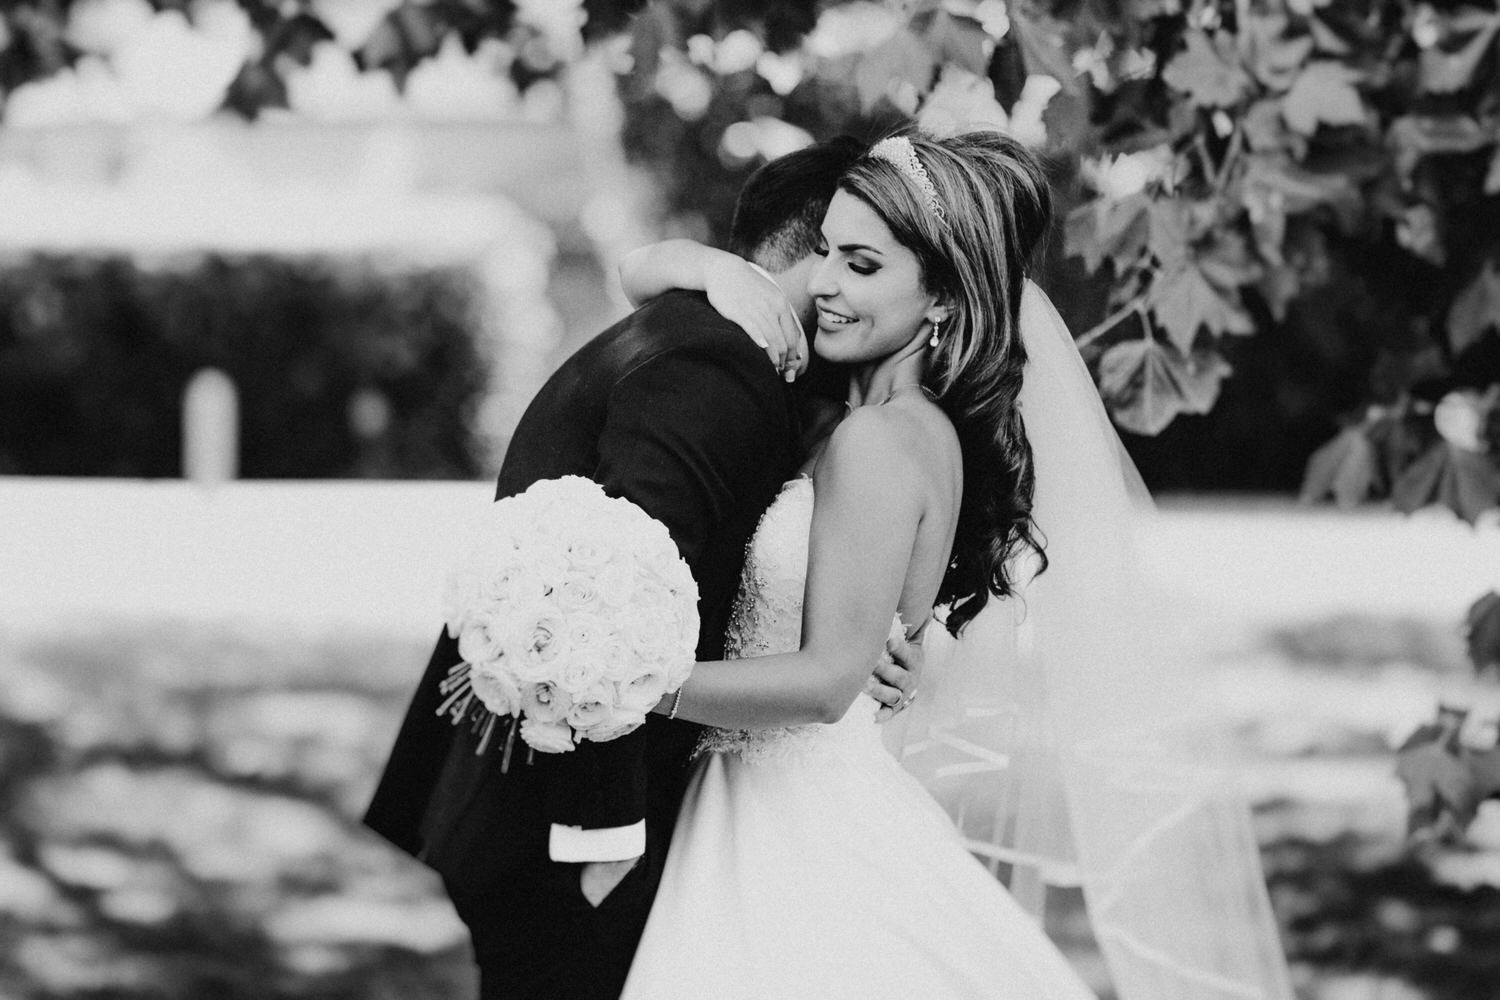 A happy bride and groom hug under a tree